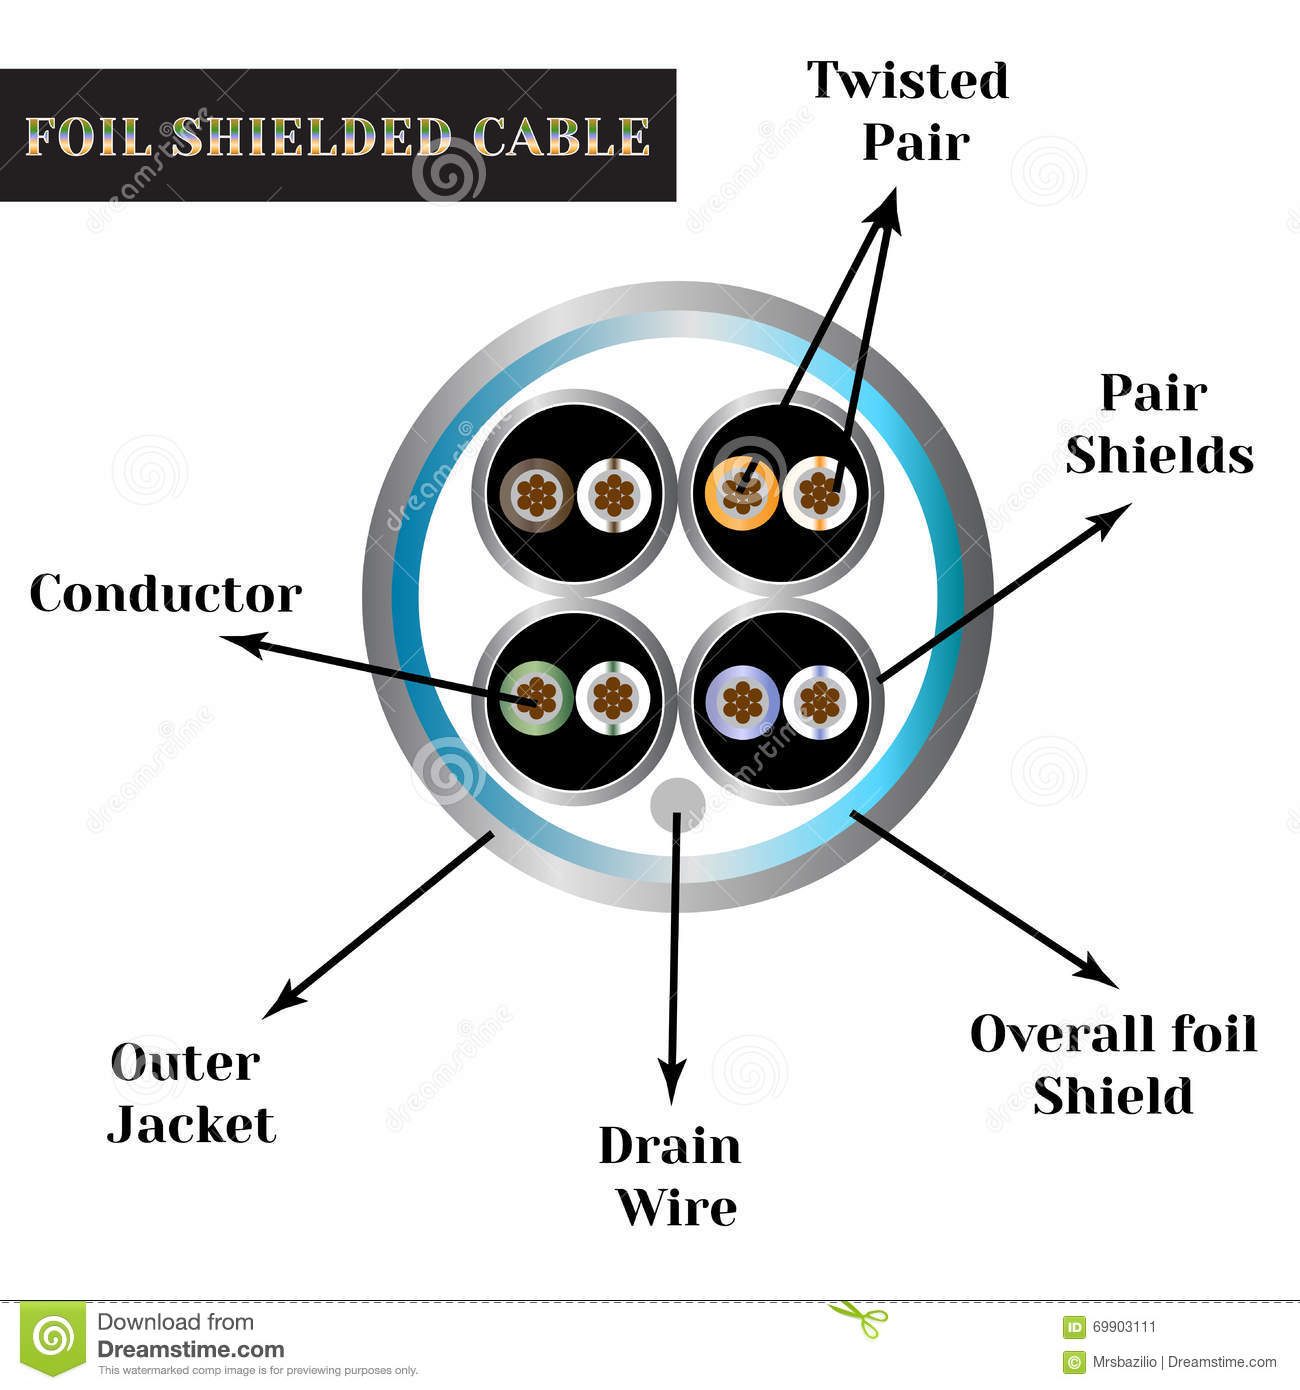 Download Twisted-pair Cable With Symbols. Foil Shielded Cable Stock Vector  - Illustration of